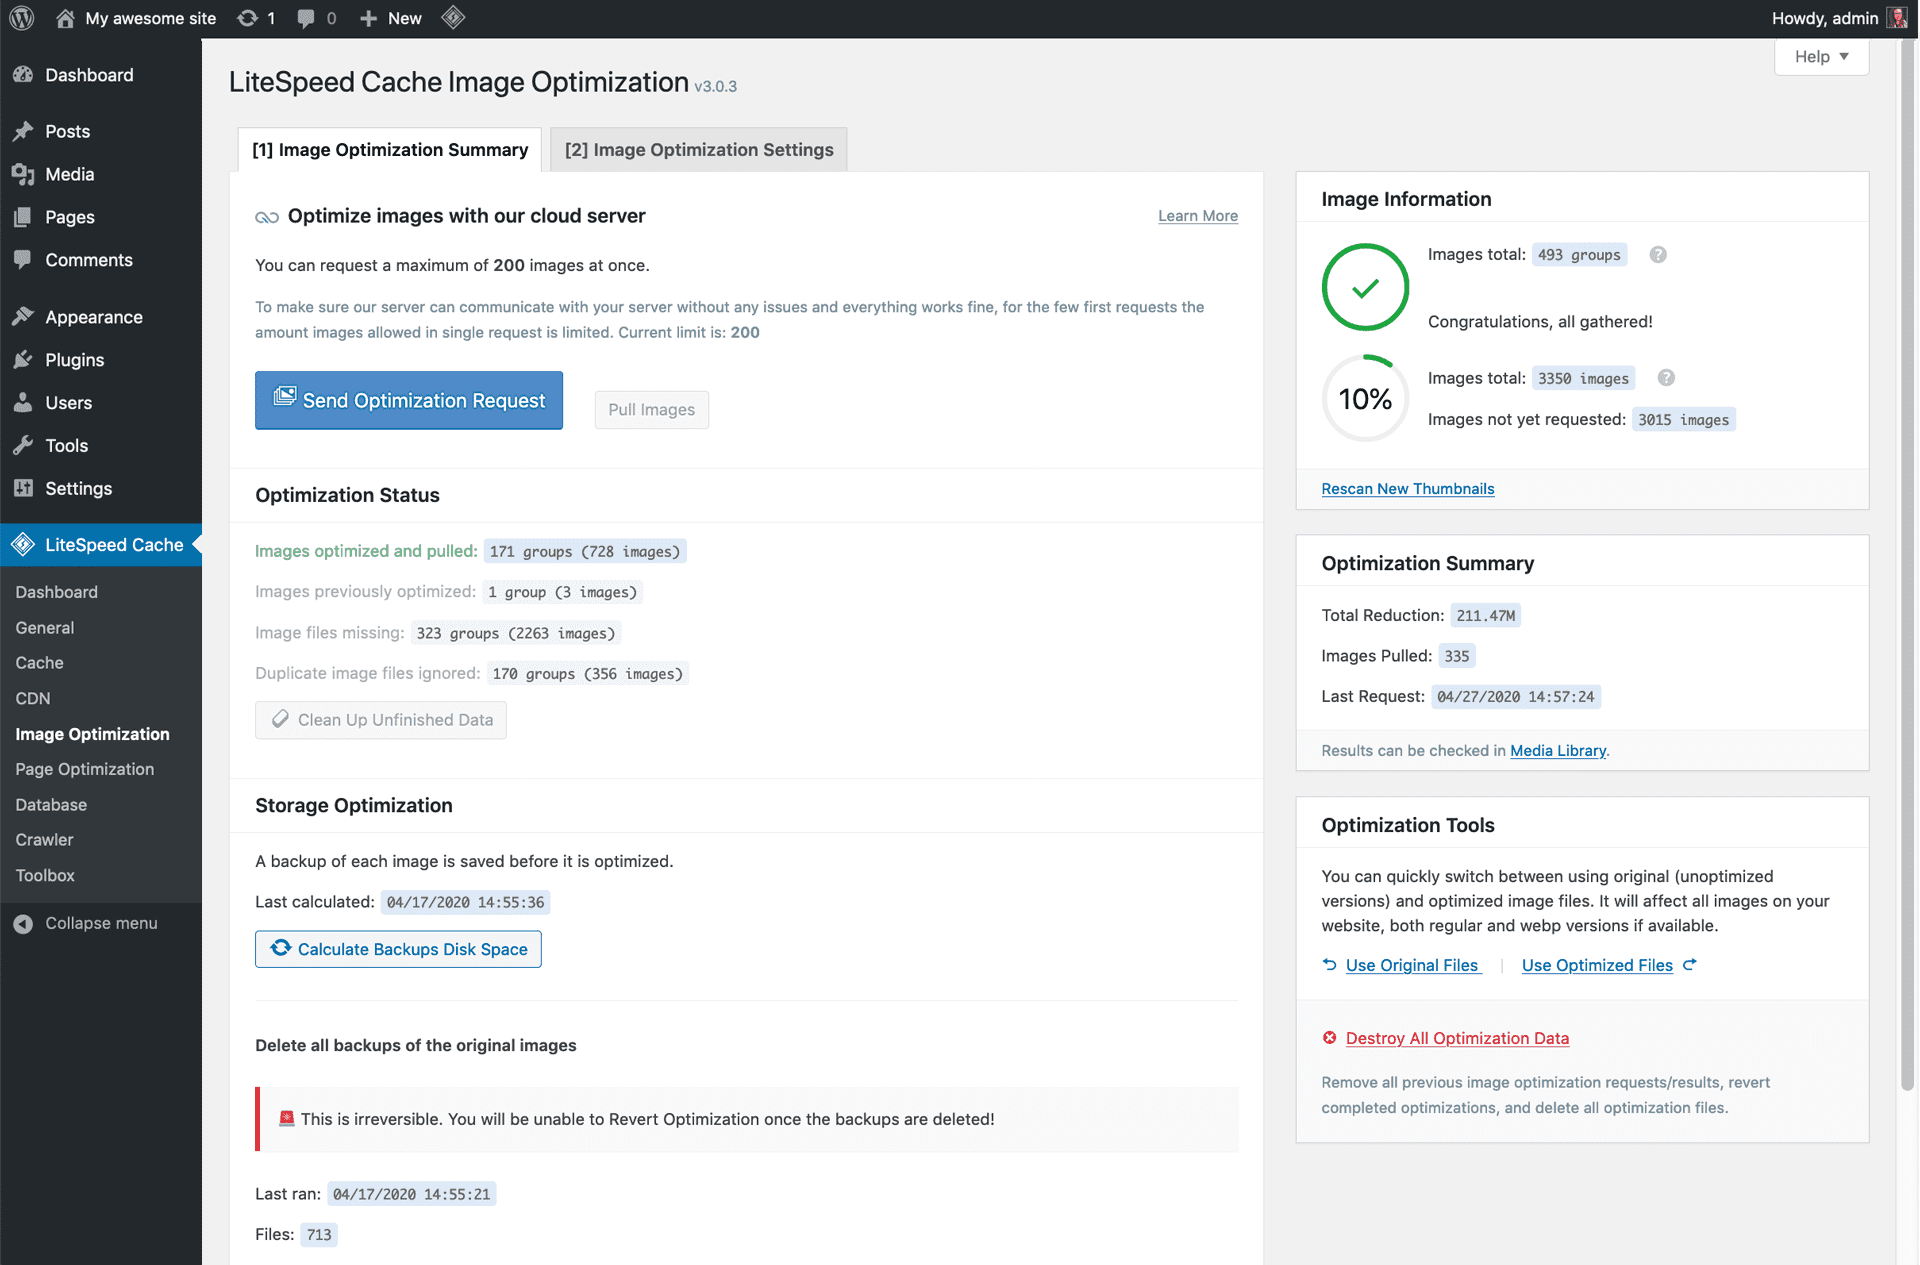 litespeed-cache screenshot 3